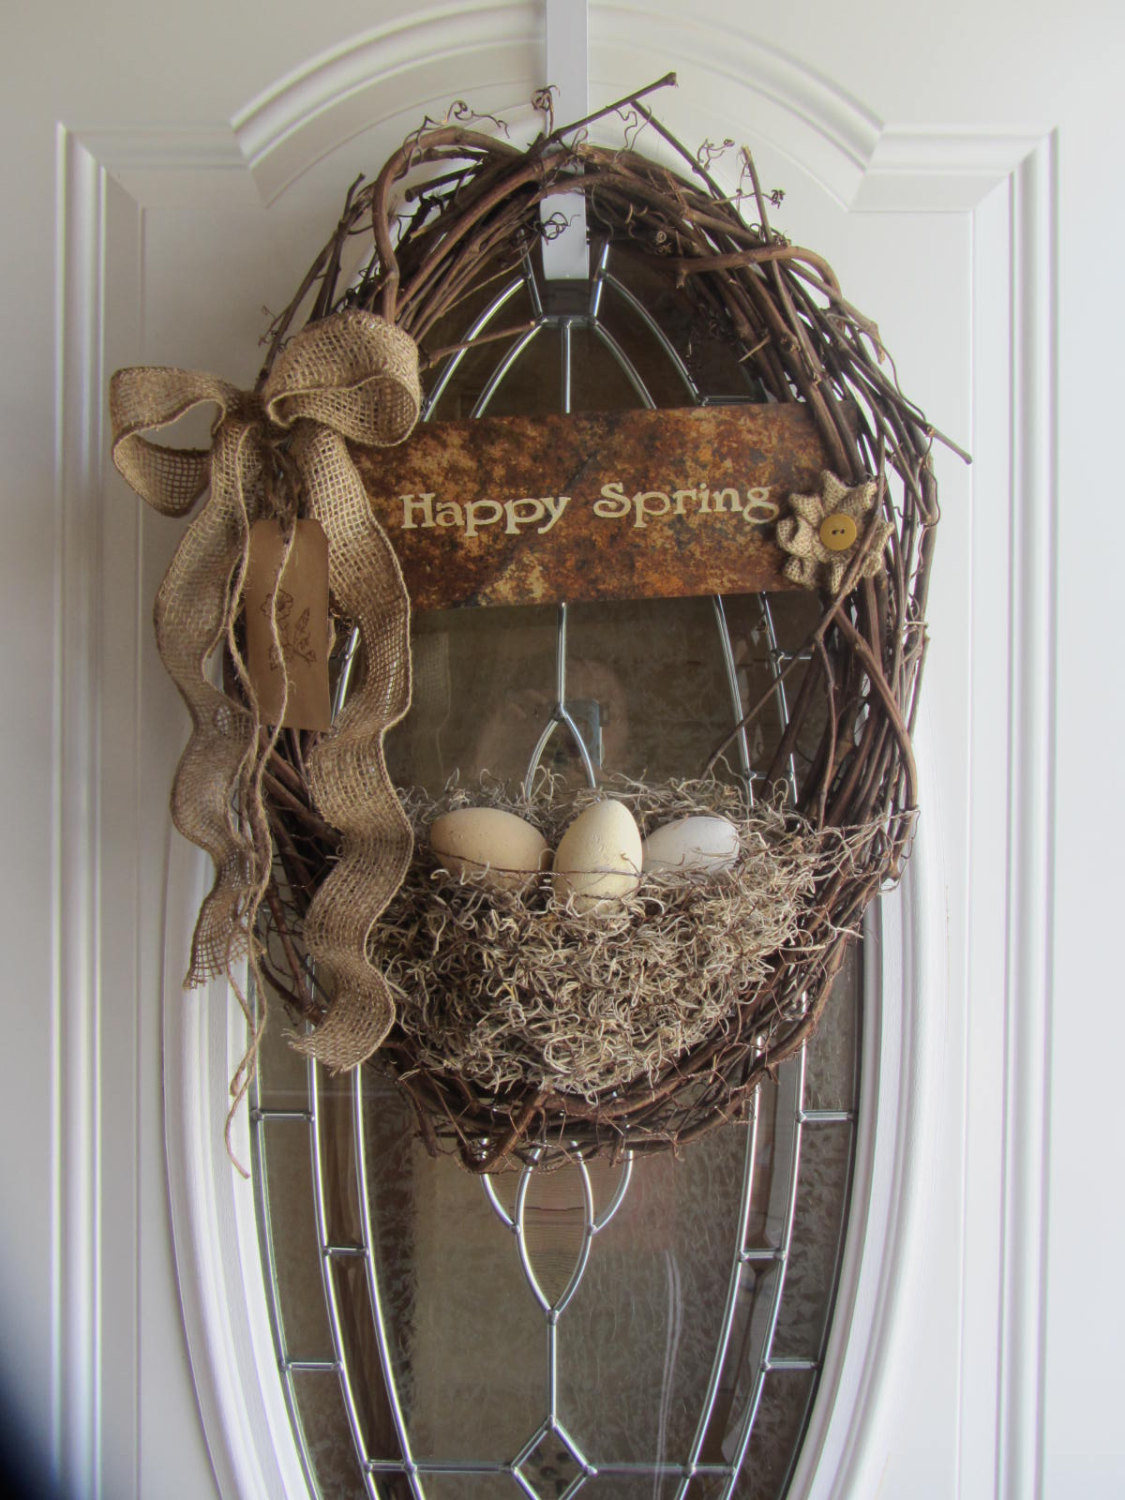 Best ideas about Shabby Chic Wreath . Save or Pin Easter Wreath Easter Door Decor Shabby Chic Wreath Now.